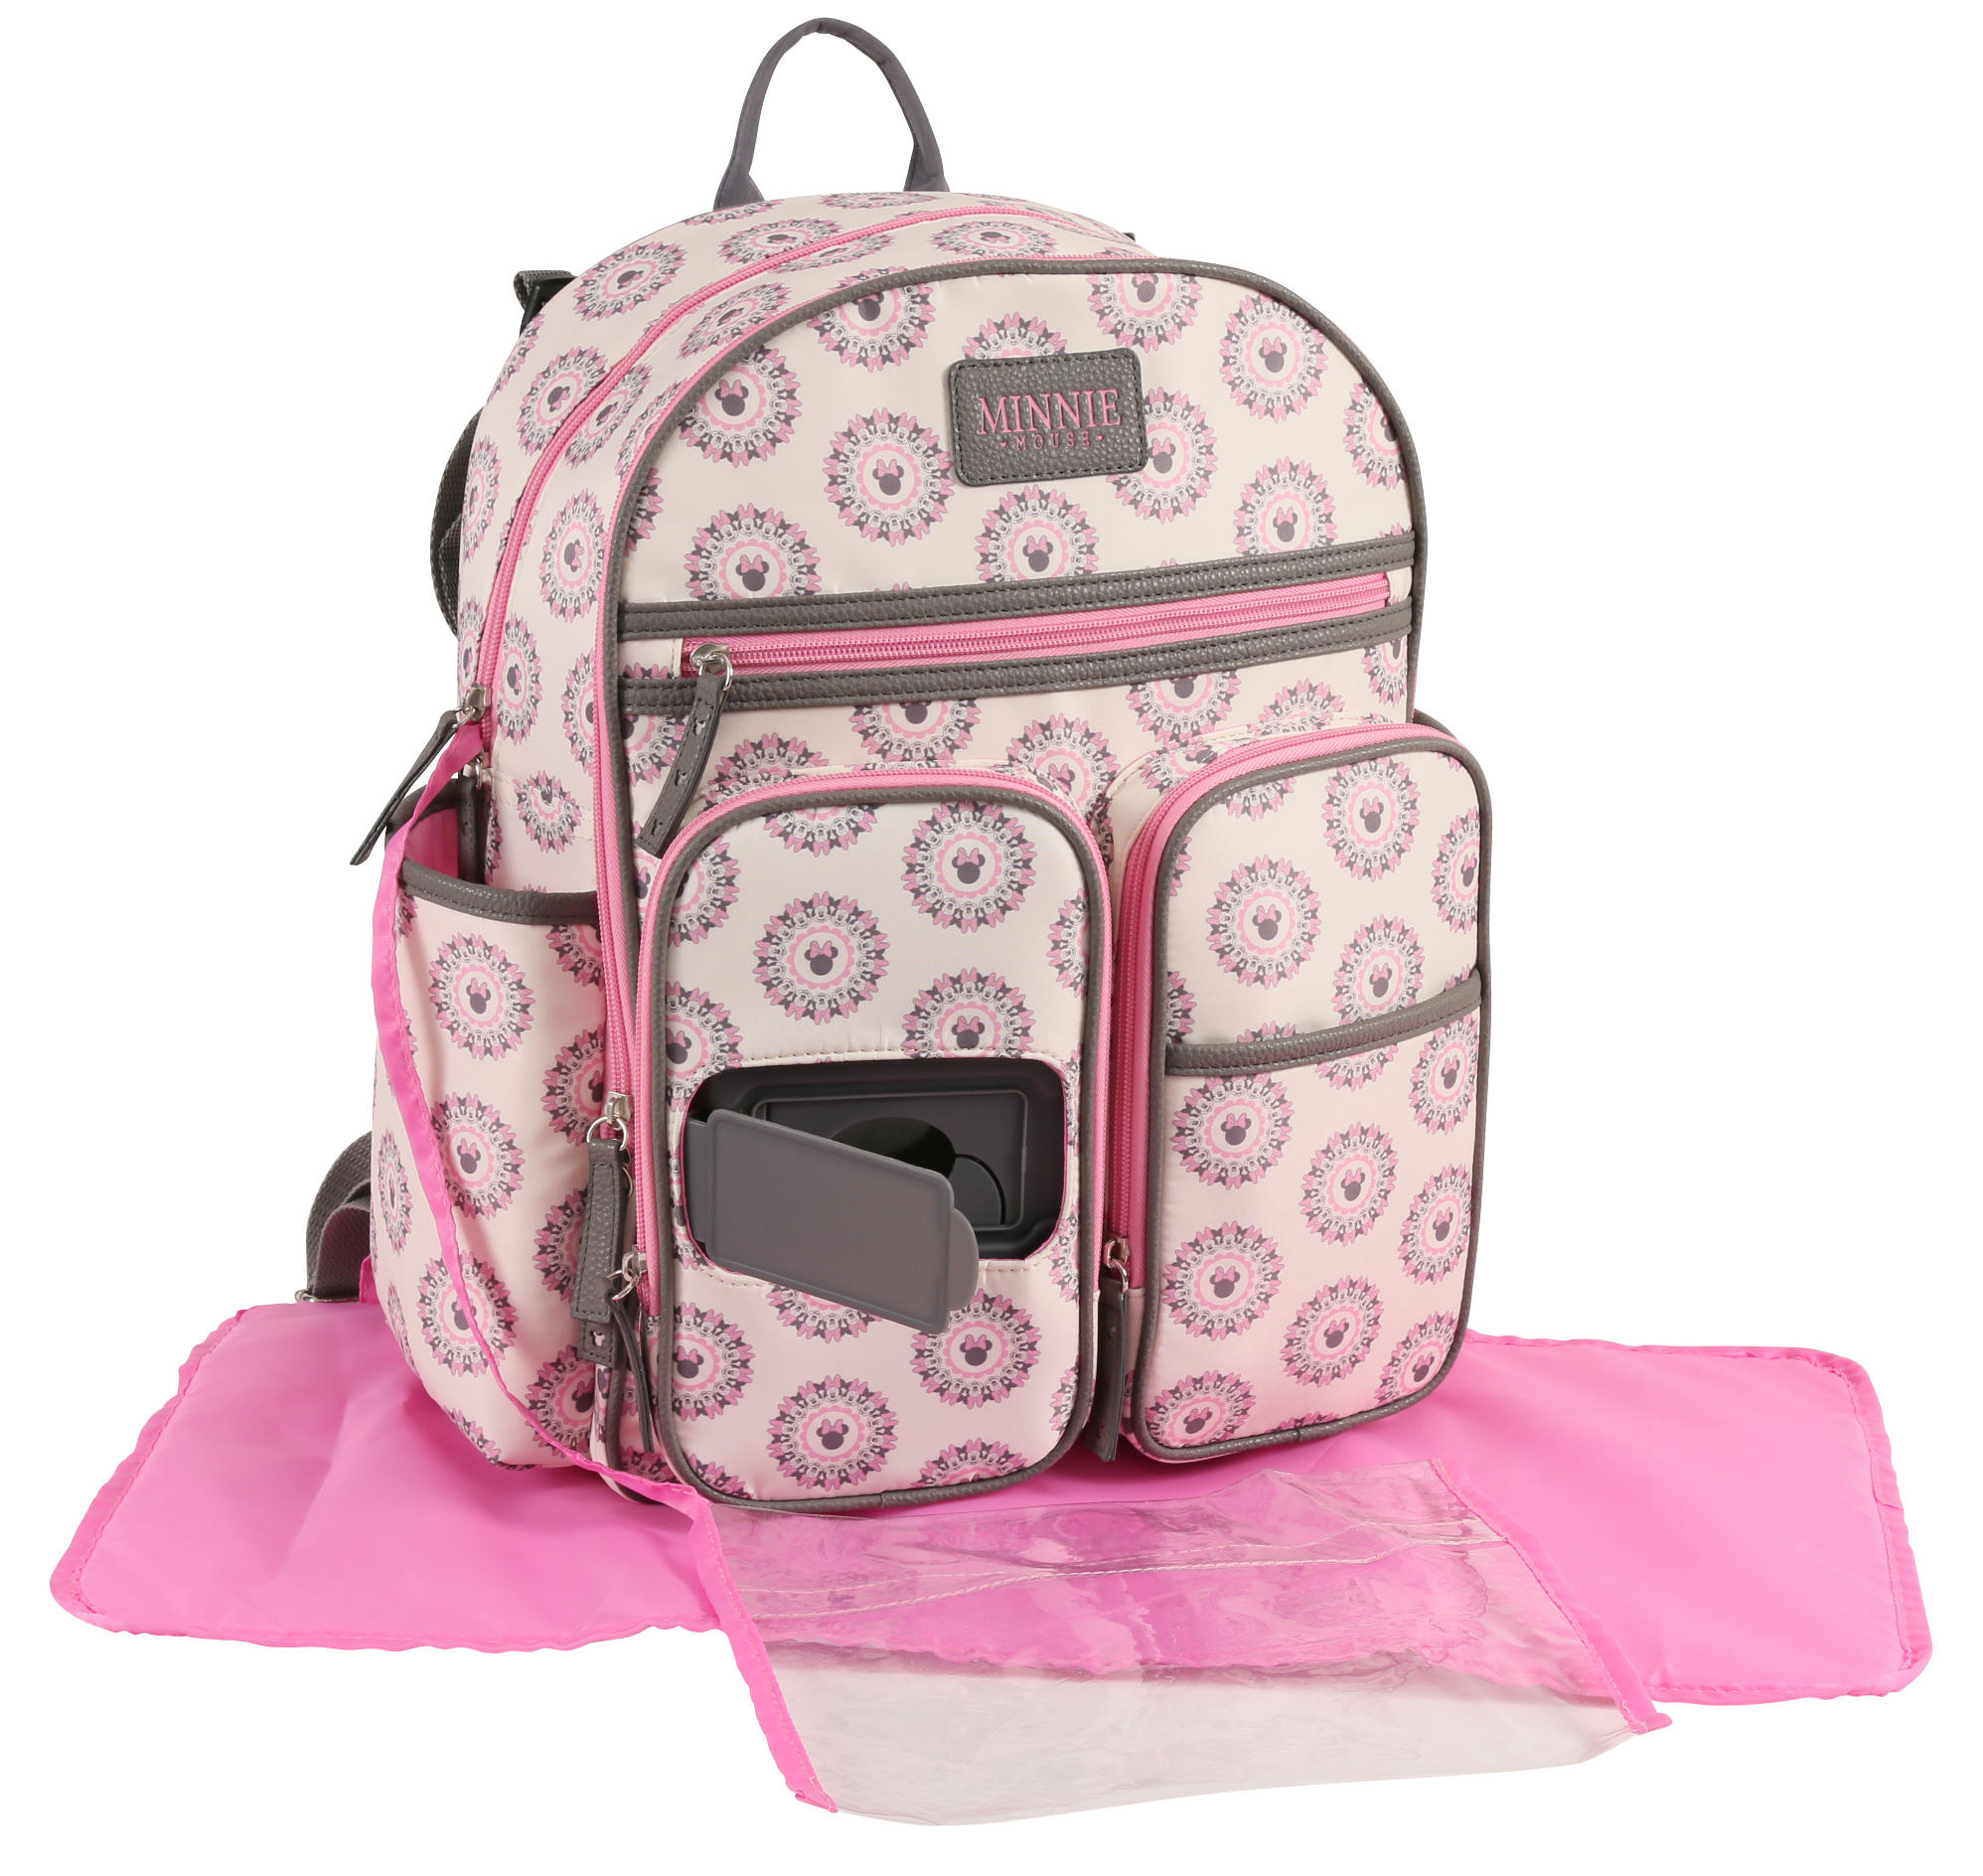 Disney Minnie Mouse Backpack Diaper Bag, Pink